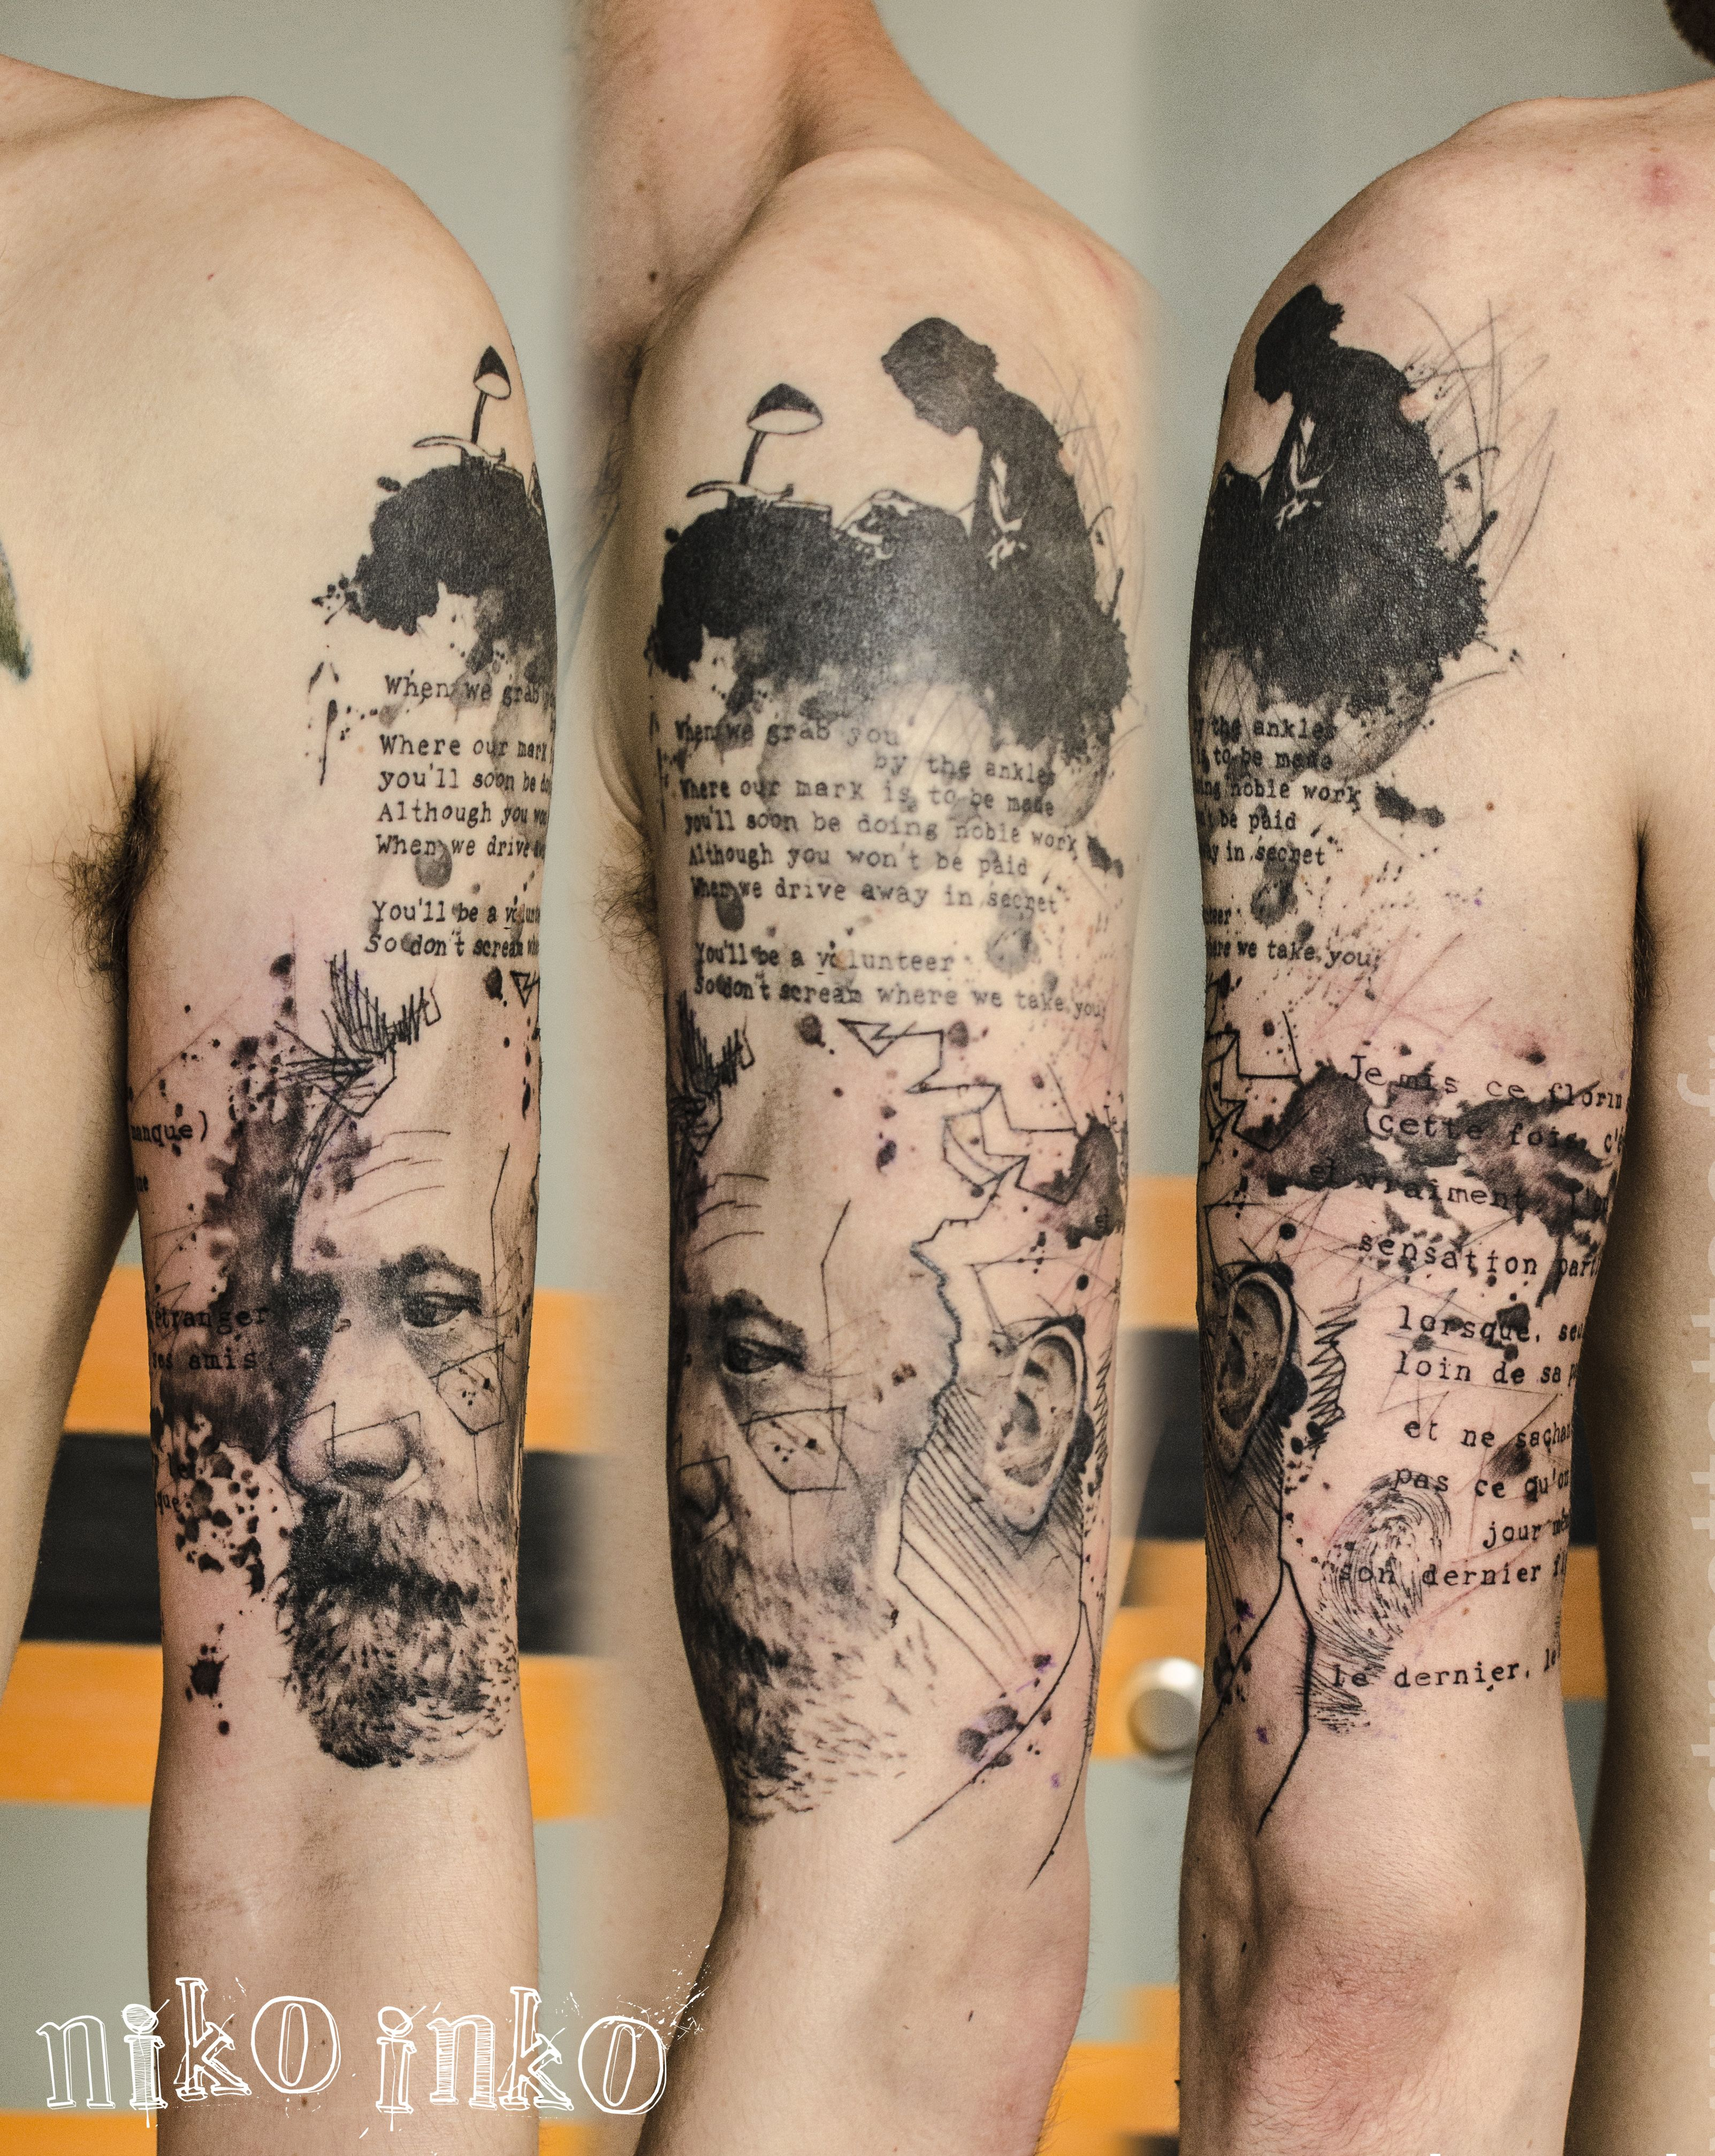 Cool new tattoo ideas for guys cool tattoo for a guy  tattoos  pinterest  tattoo tatoo and men